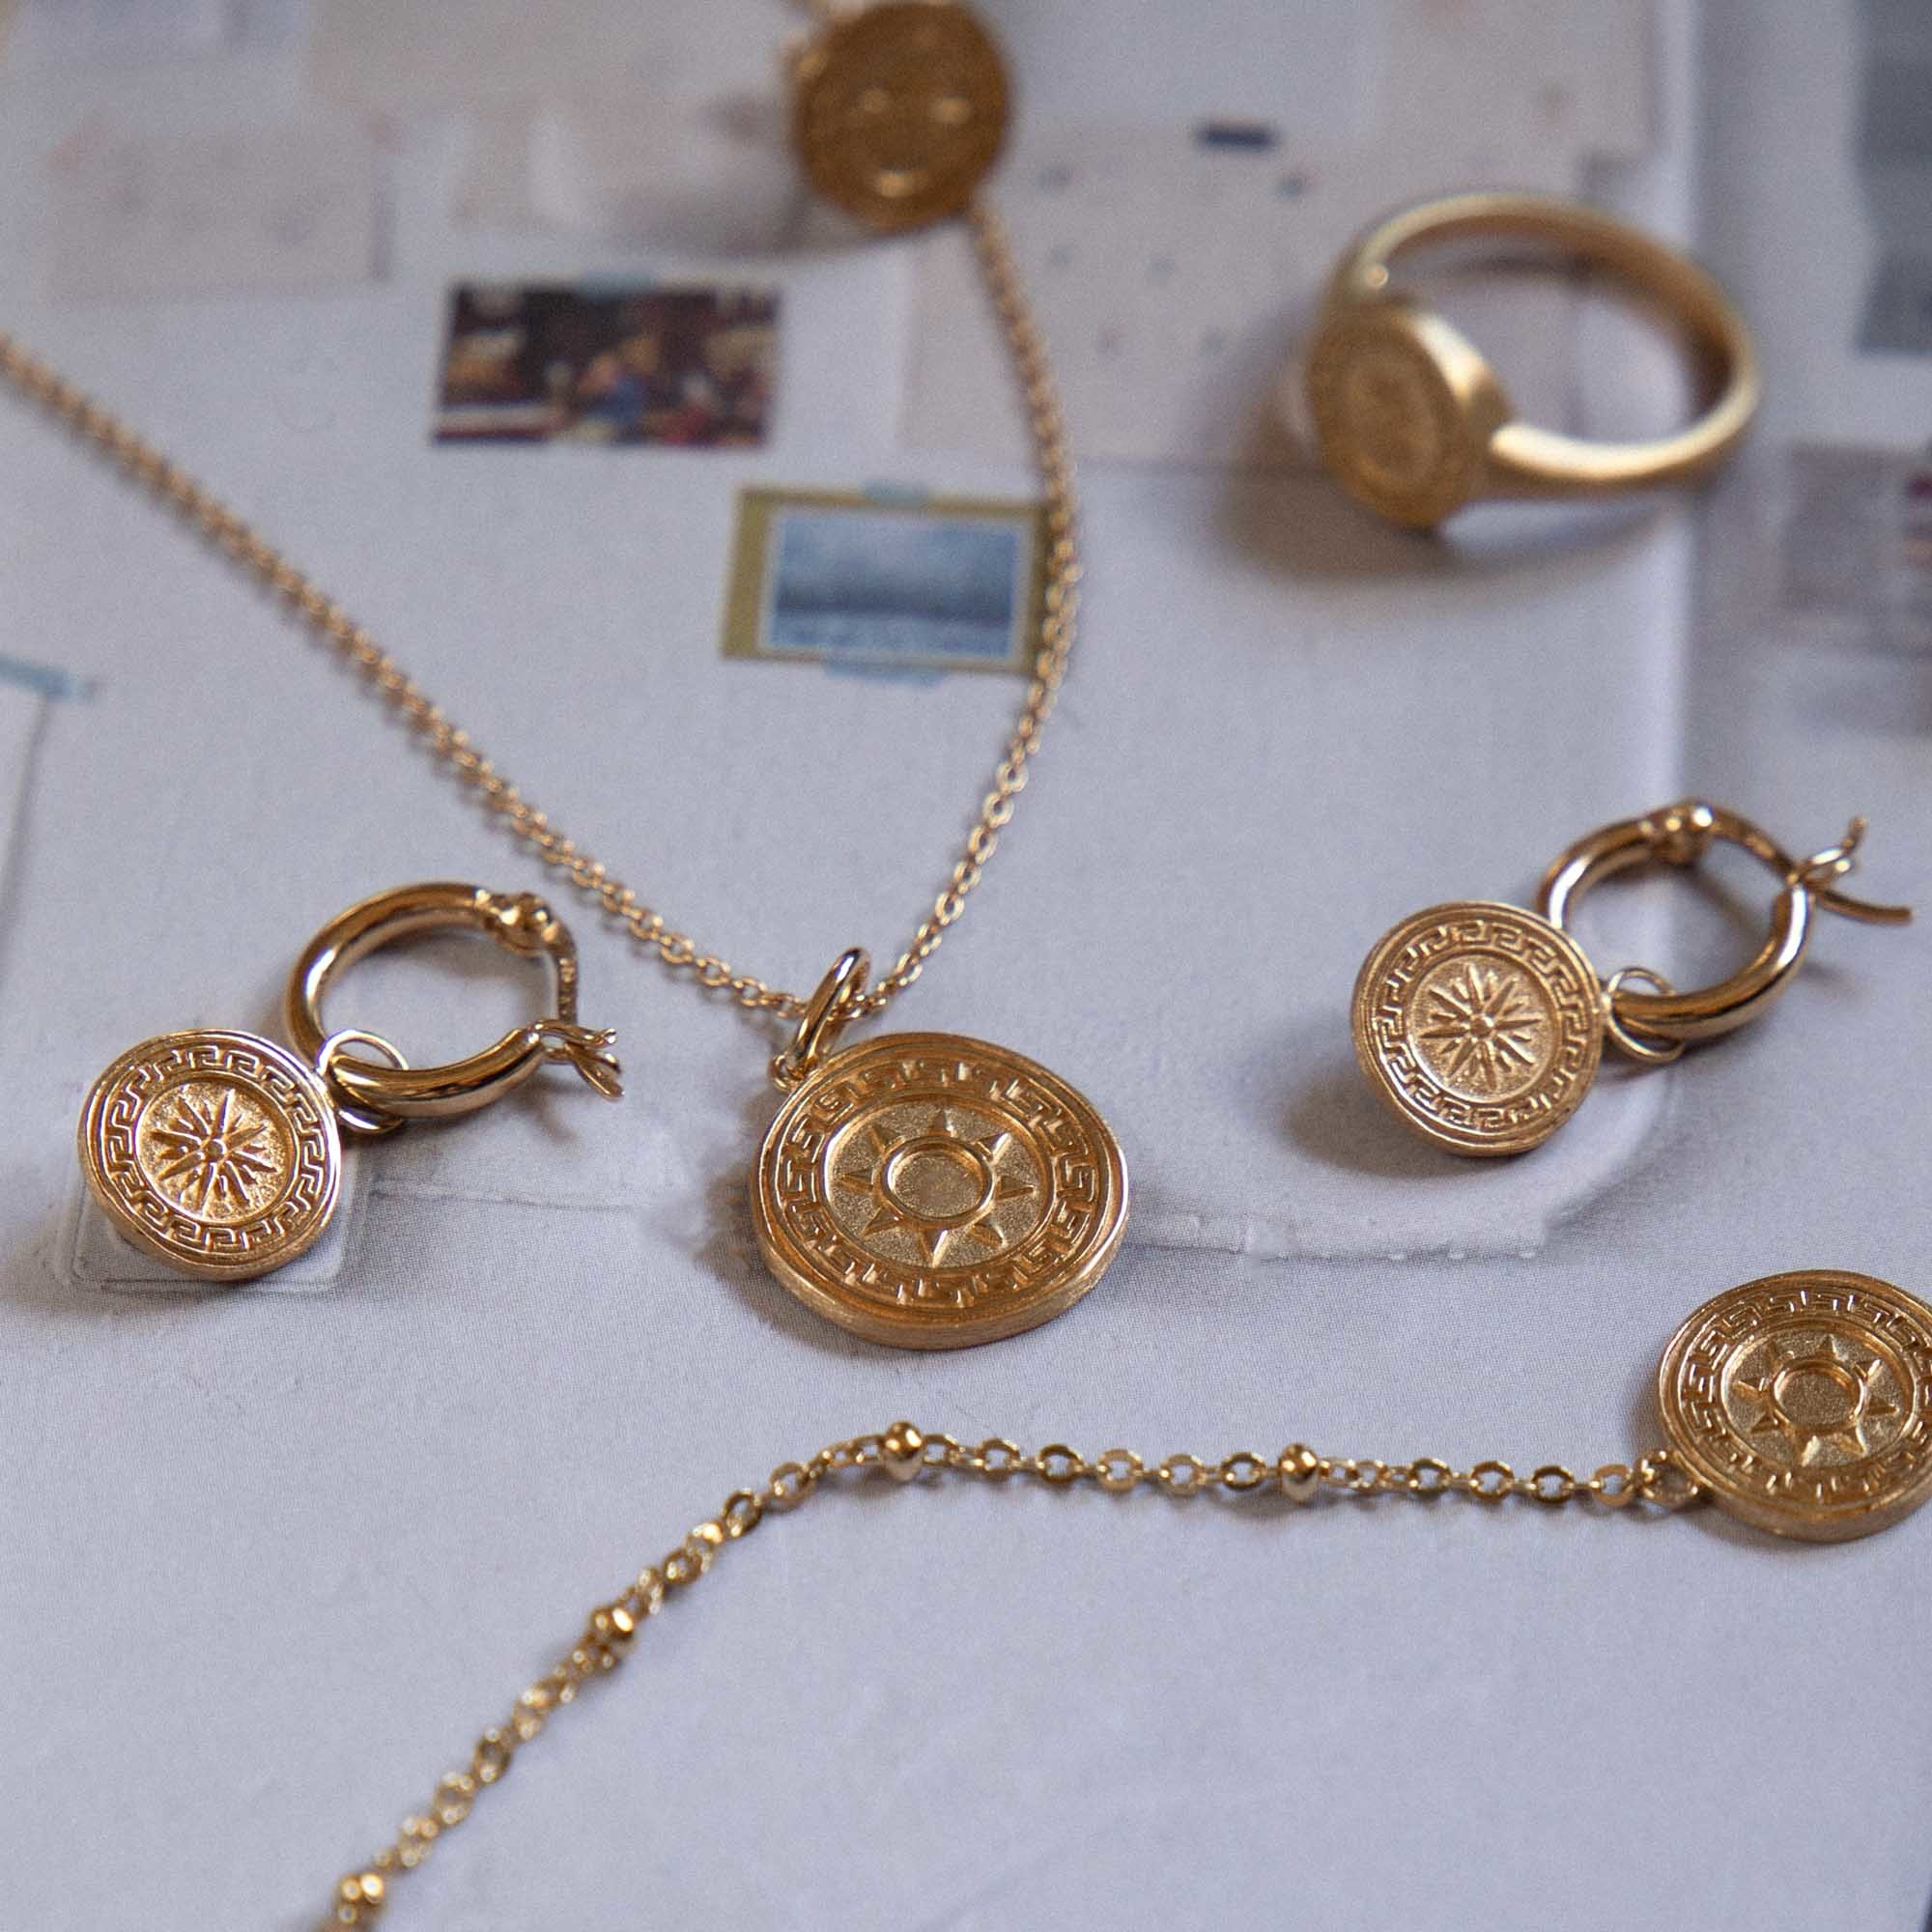 Violet Hamden Athens 925 sterling silver gold colored necklace with coin